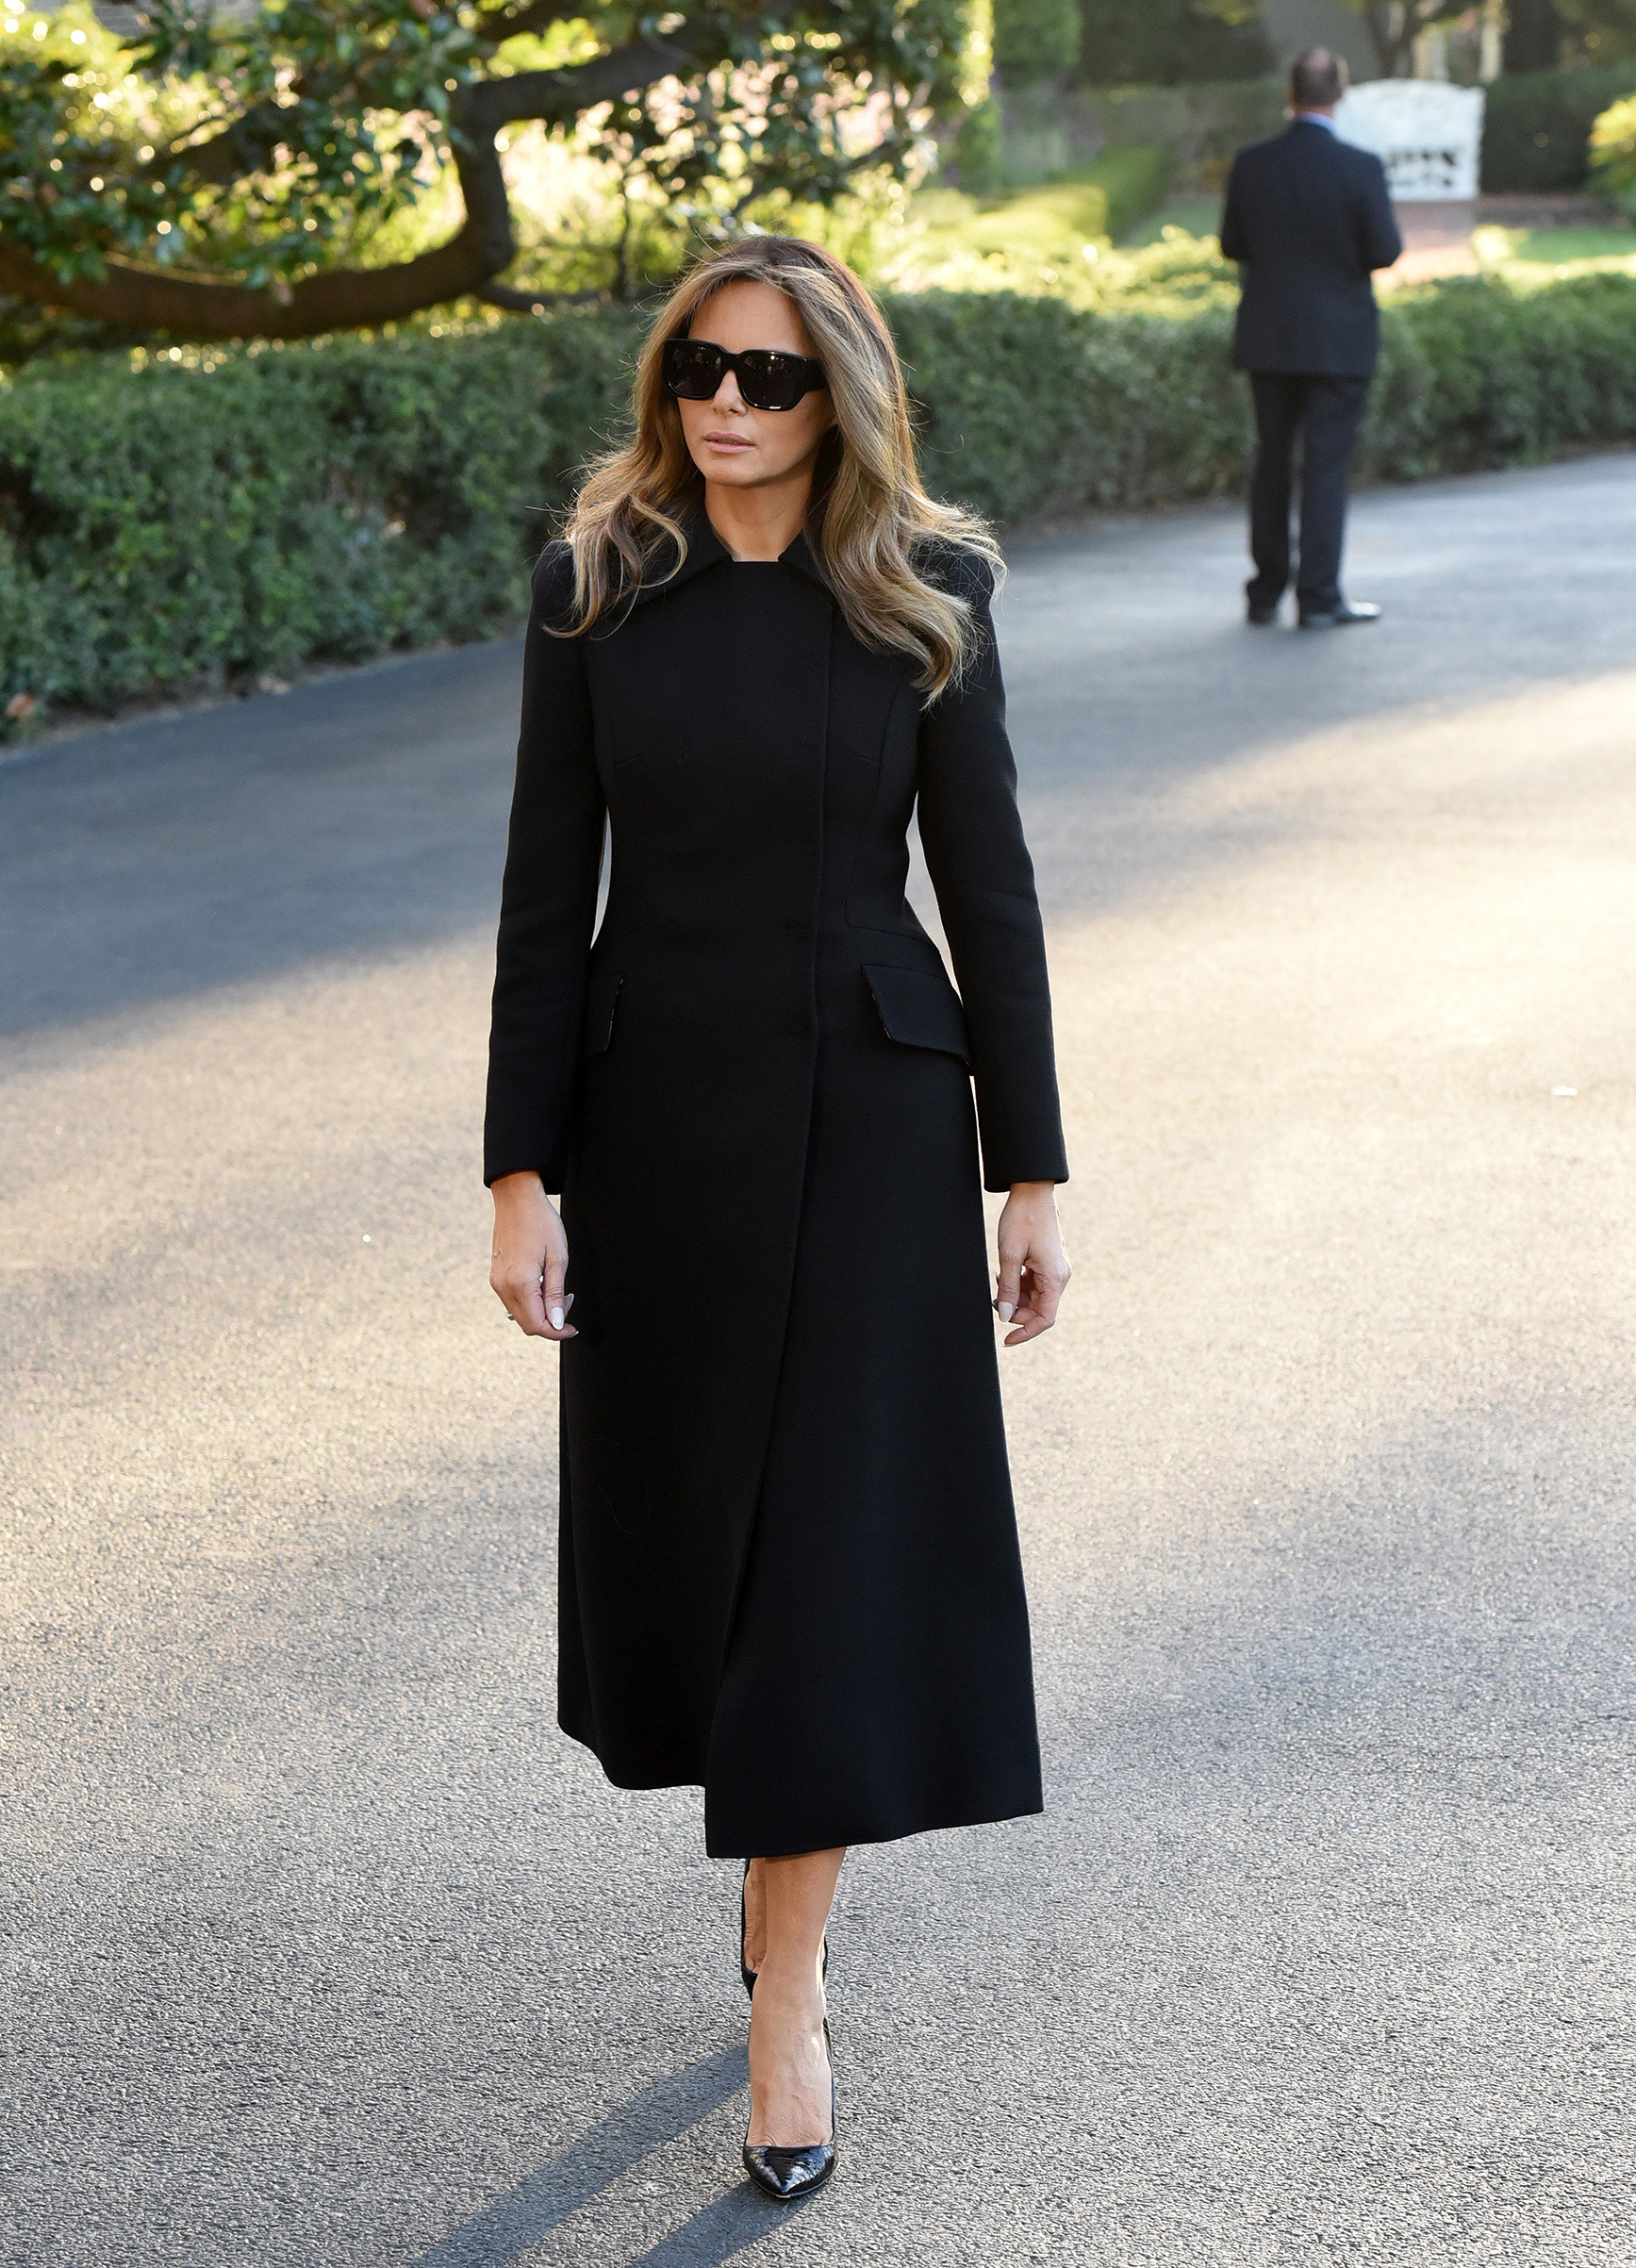 First Lady Melania Trump, departs the White House wearing a black full length coat, en route to Las Vegas, Nevada Oct. 4, 2017.